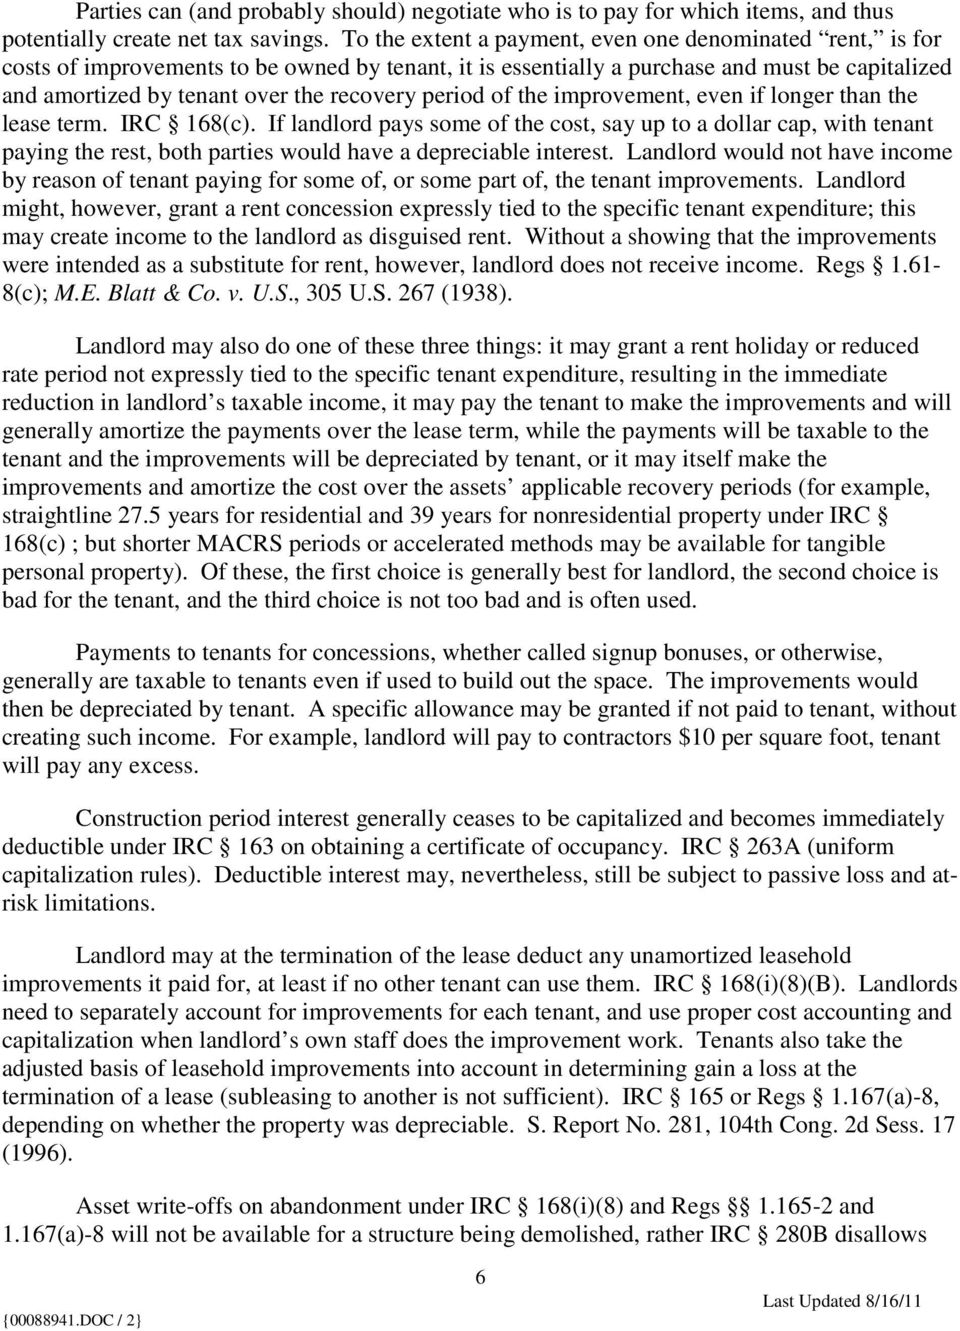 Typical Tax Aspects of Real Property Leases - PDF